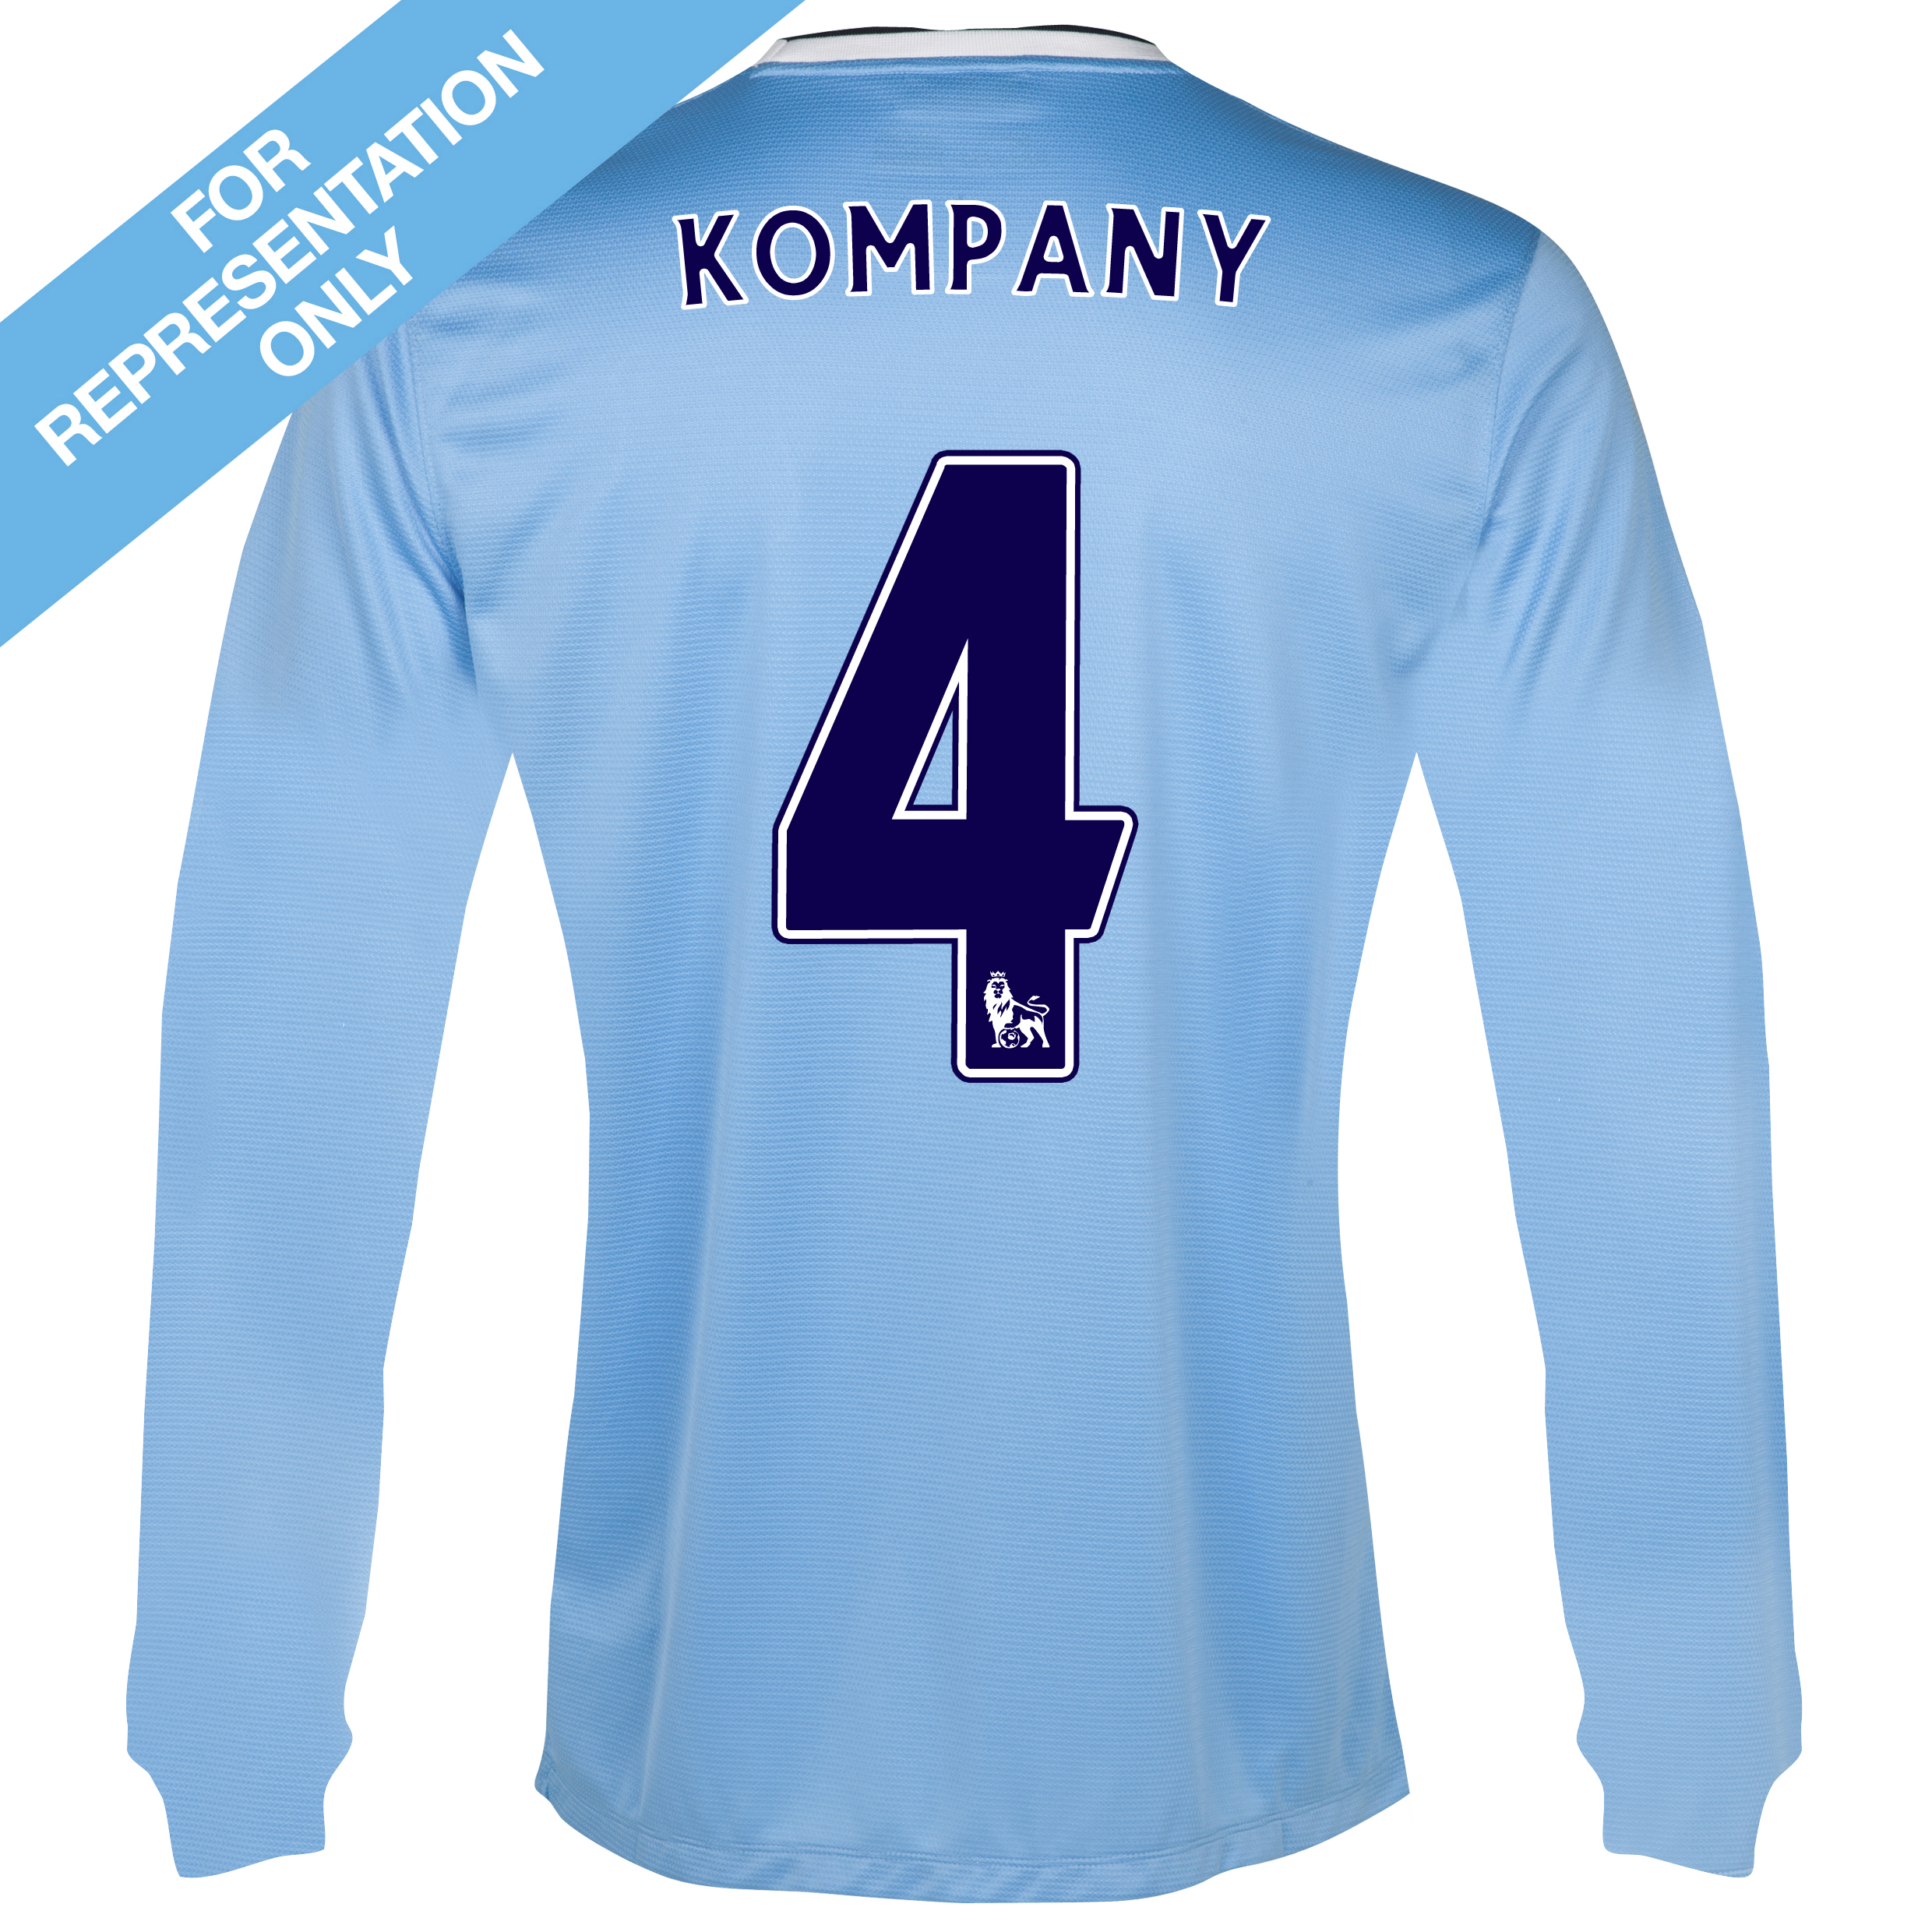 Manchester City Home Shirt 2013/14 - Long Sleeved - Junior with Kompany 4 printing